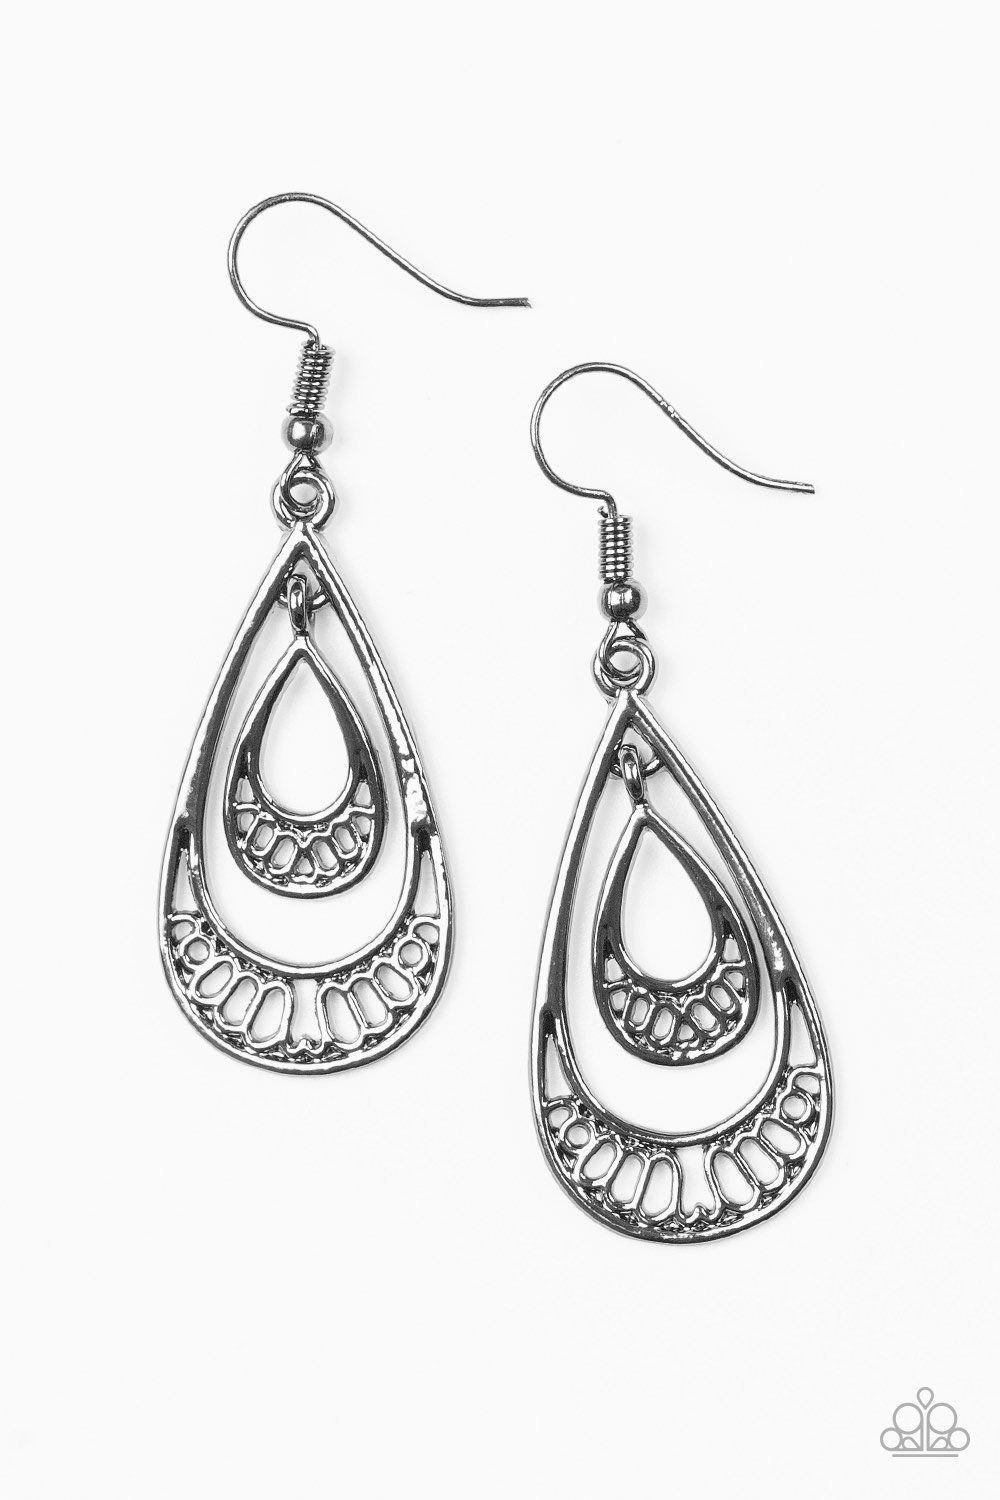 f562ce774 REIGNed Out - Gunmetal Earrings in 2019 | beads and baubles #4 ...